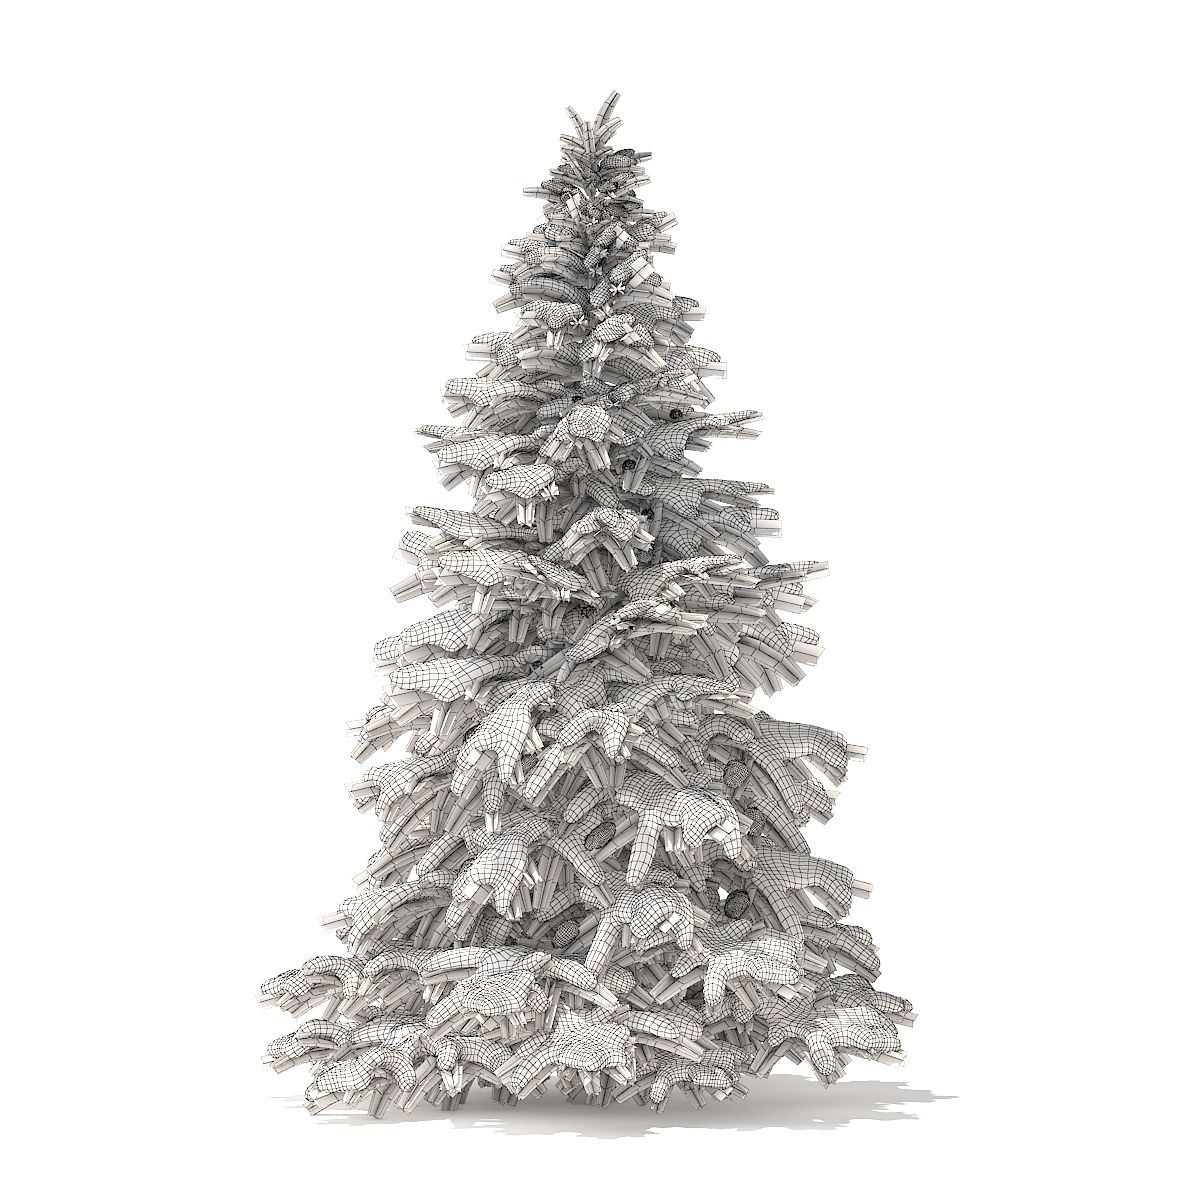 Spruce Tree With Snow 3d Model 2 8m Tree Spruce Snow Model Spruce Tree Tree Wedding Design Inspiration